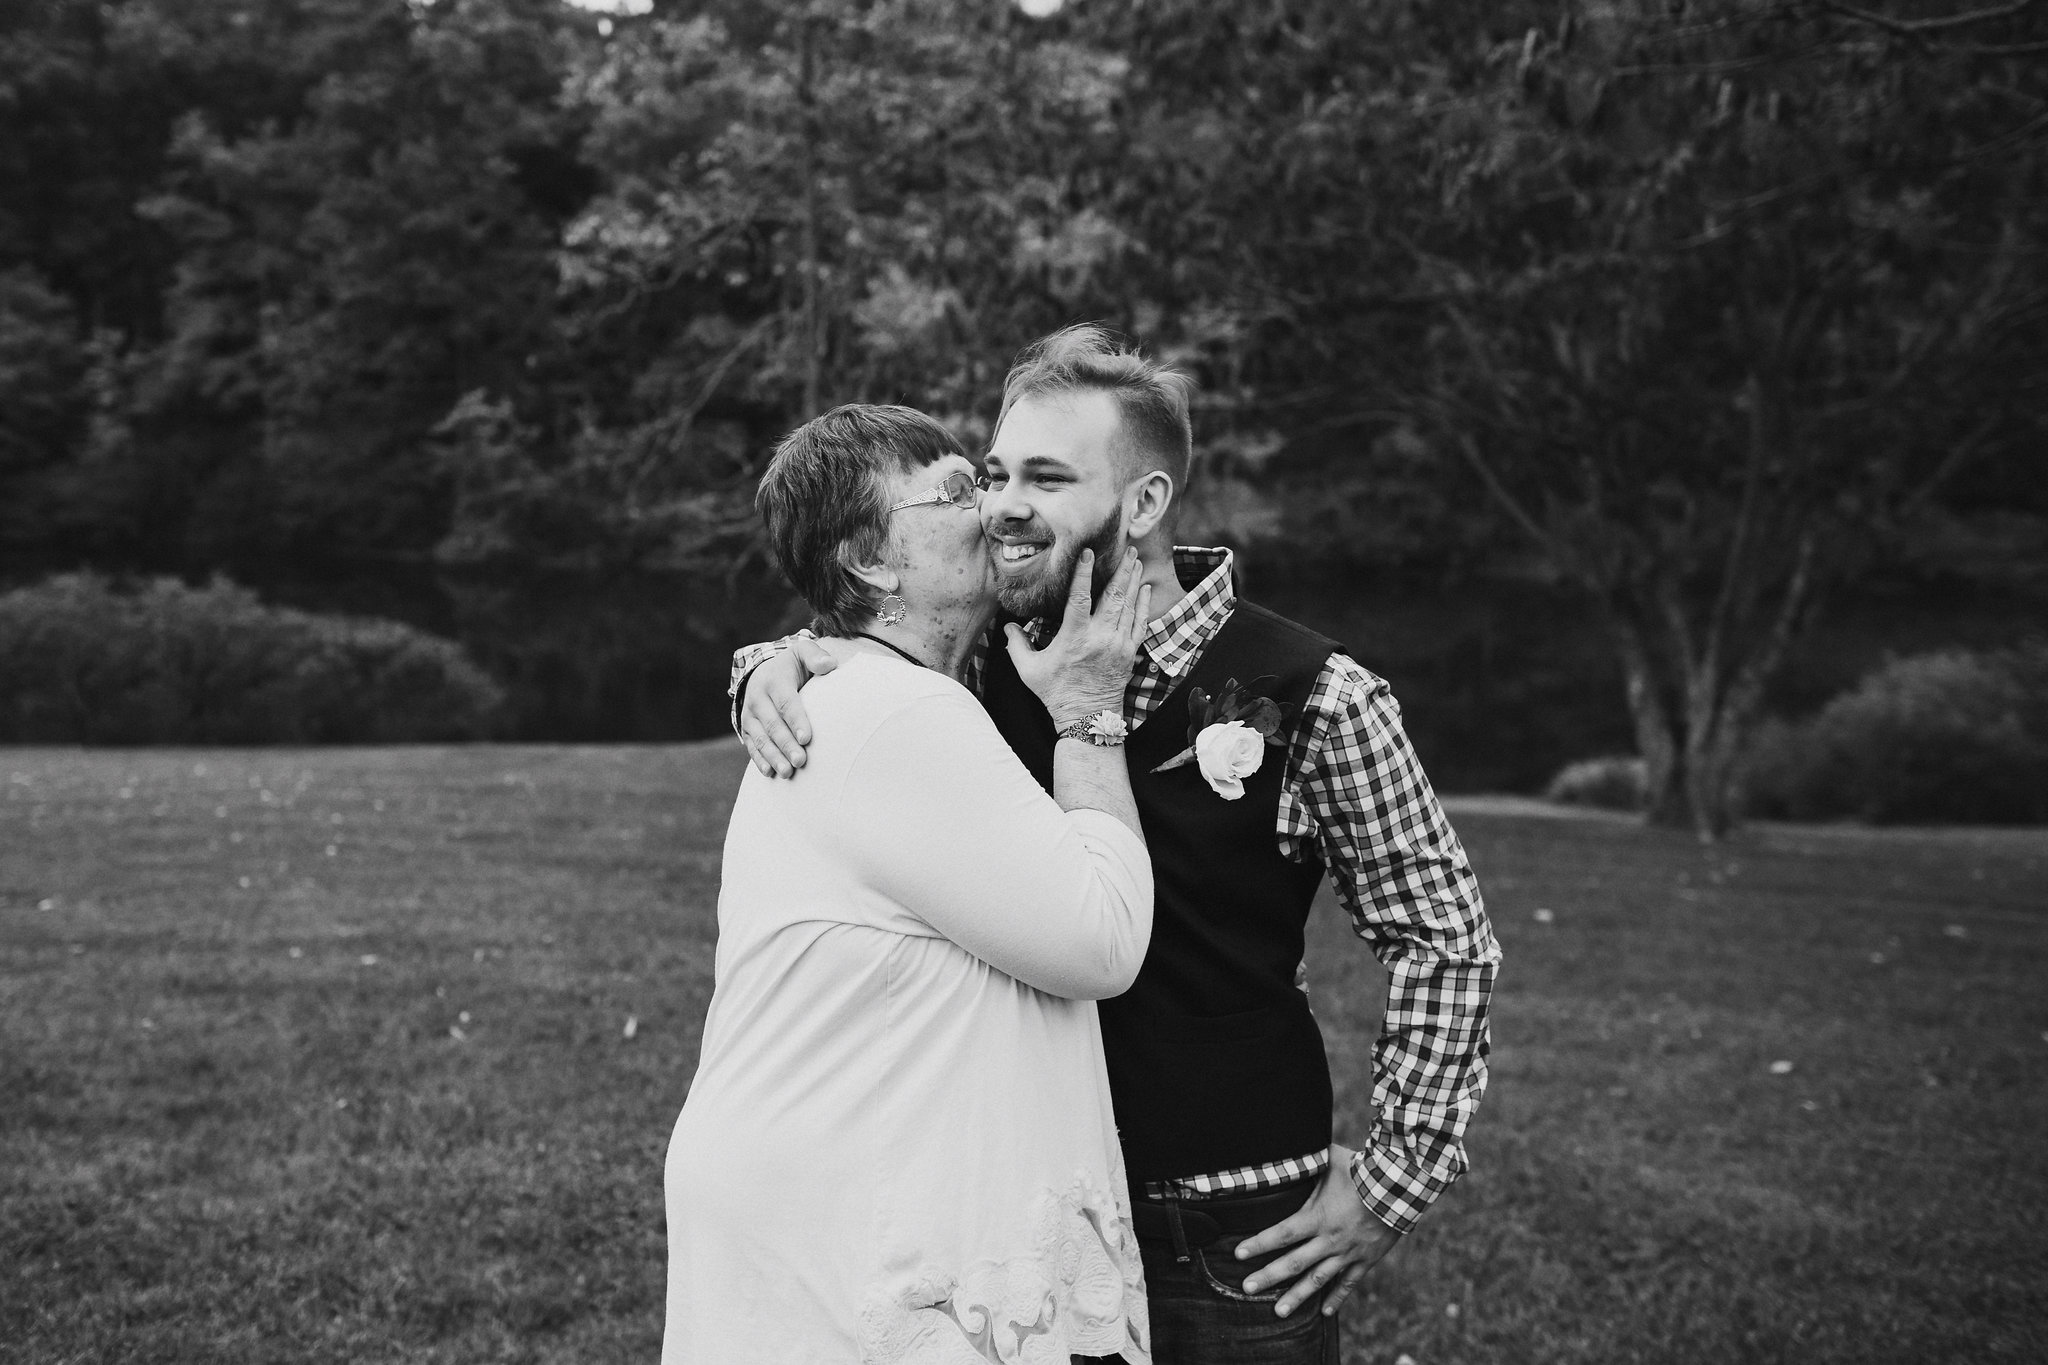 Caitlin&CodyMarried2017-11-03at19.19.38PM104.jpg